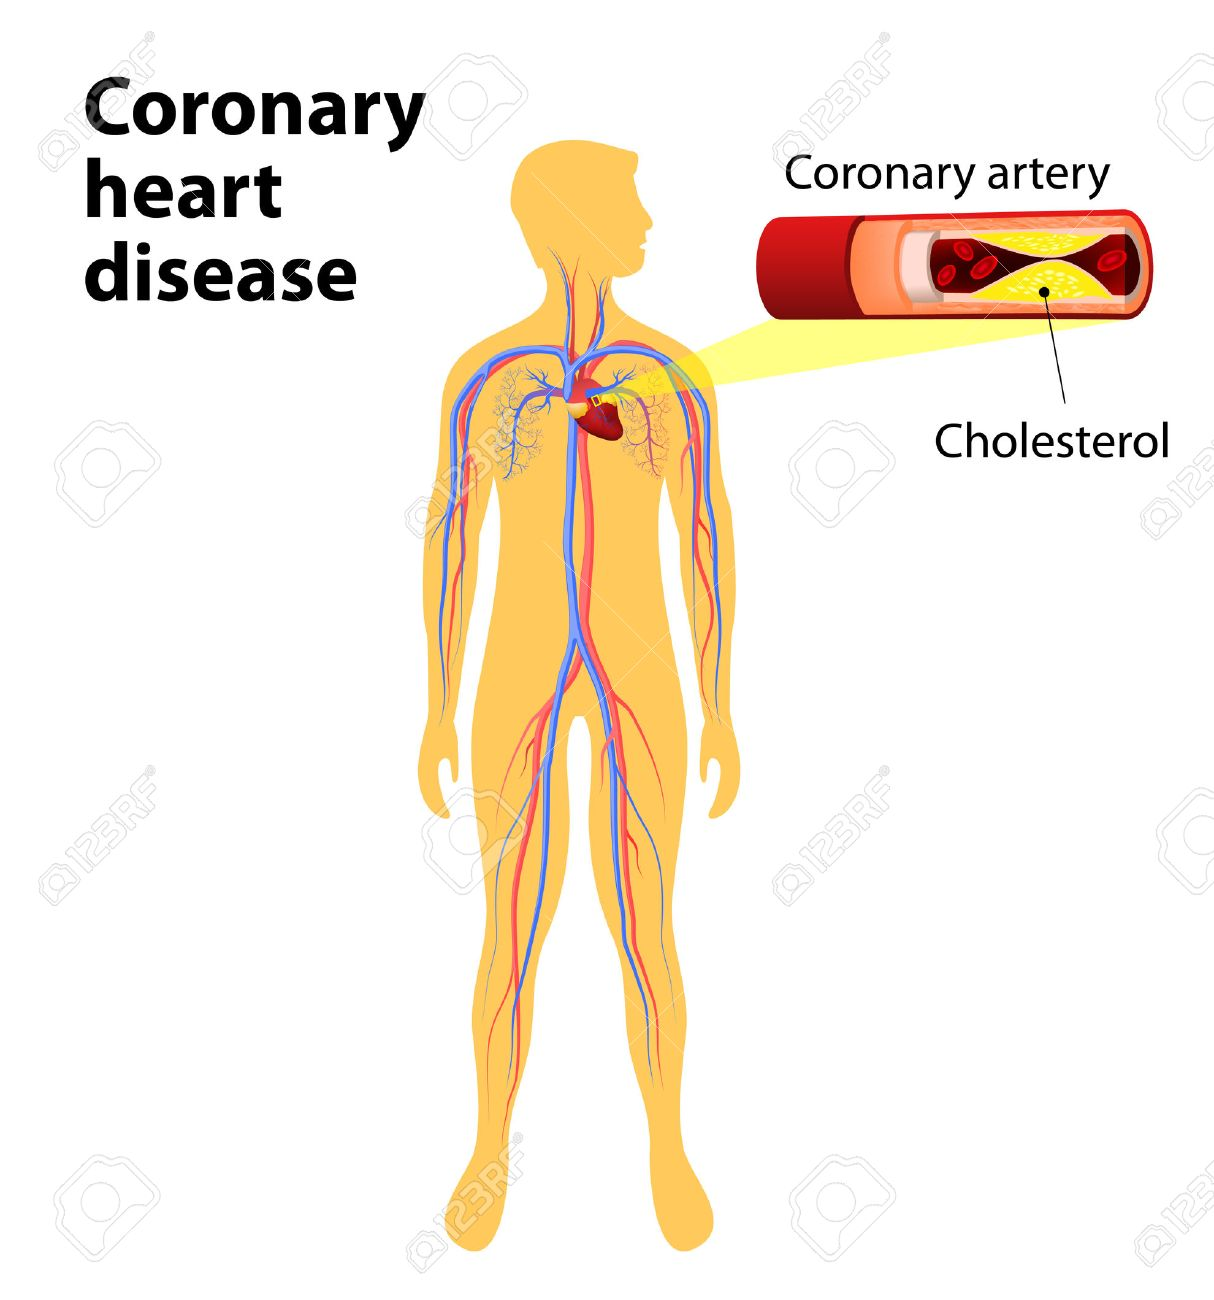 Coronary Heart Disease Is A Condition In Which The Heart\'s Arteries ...